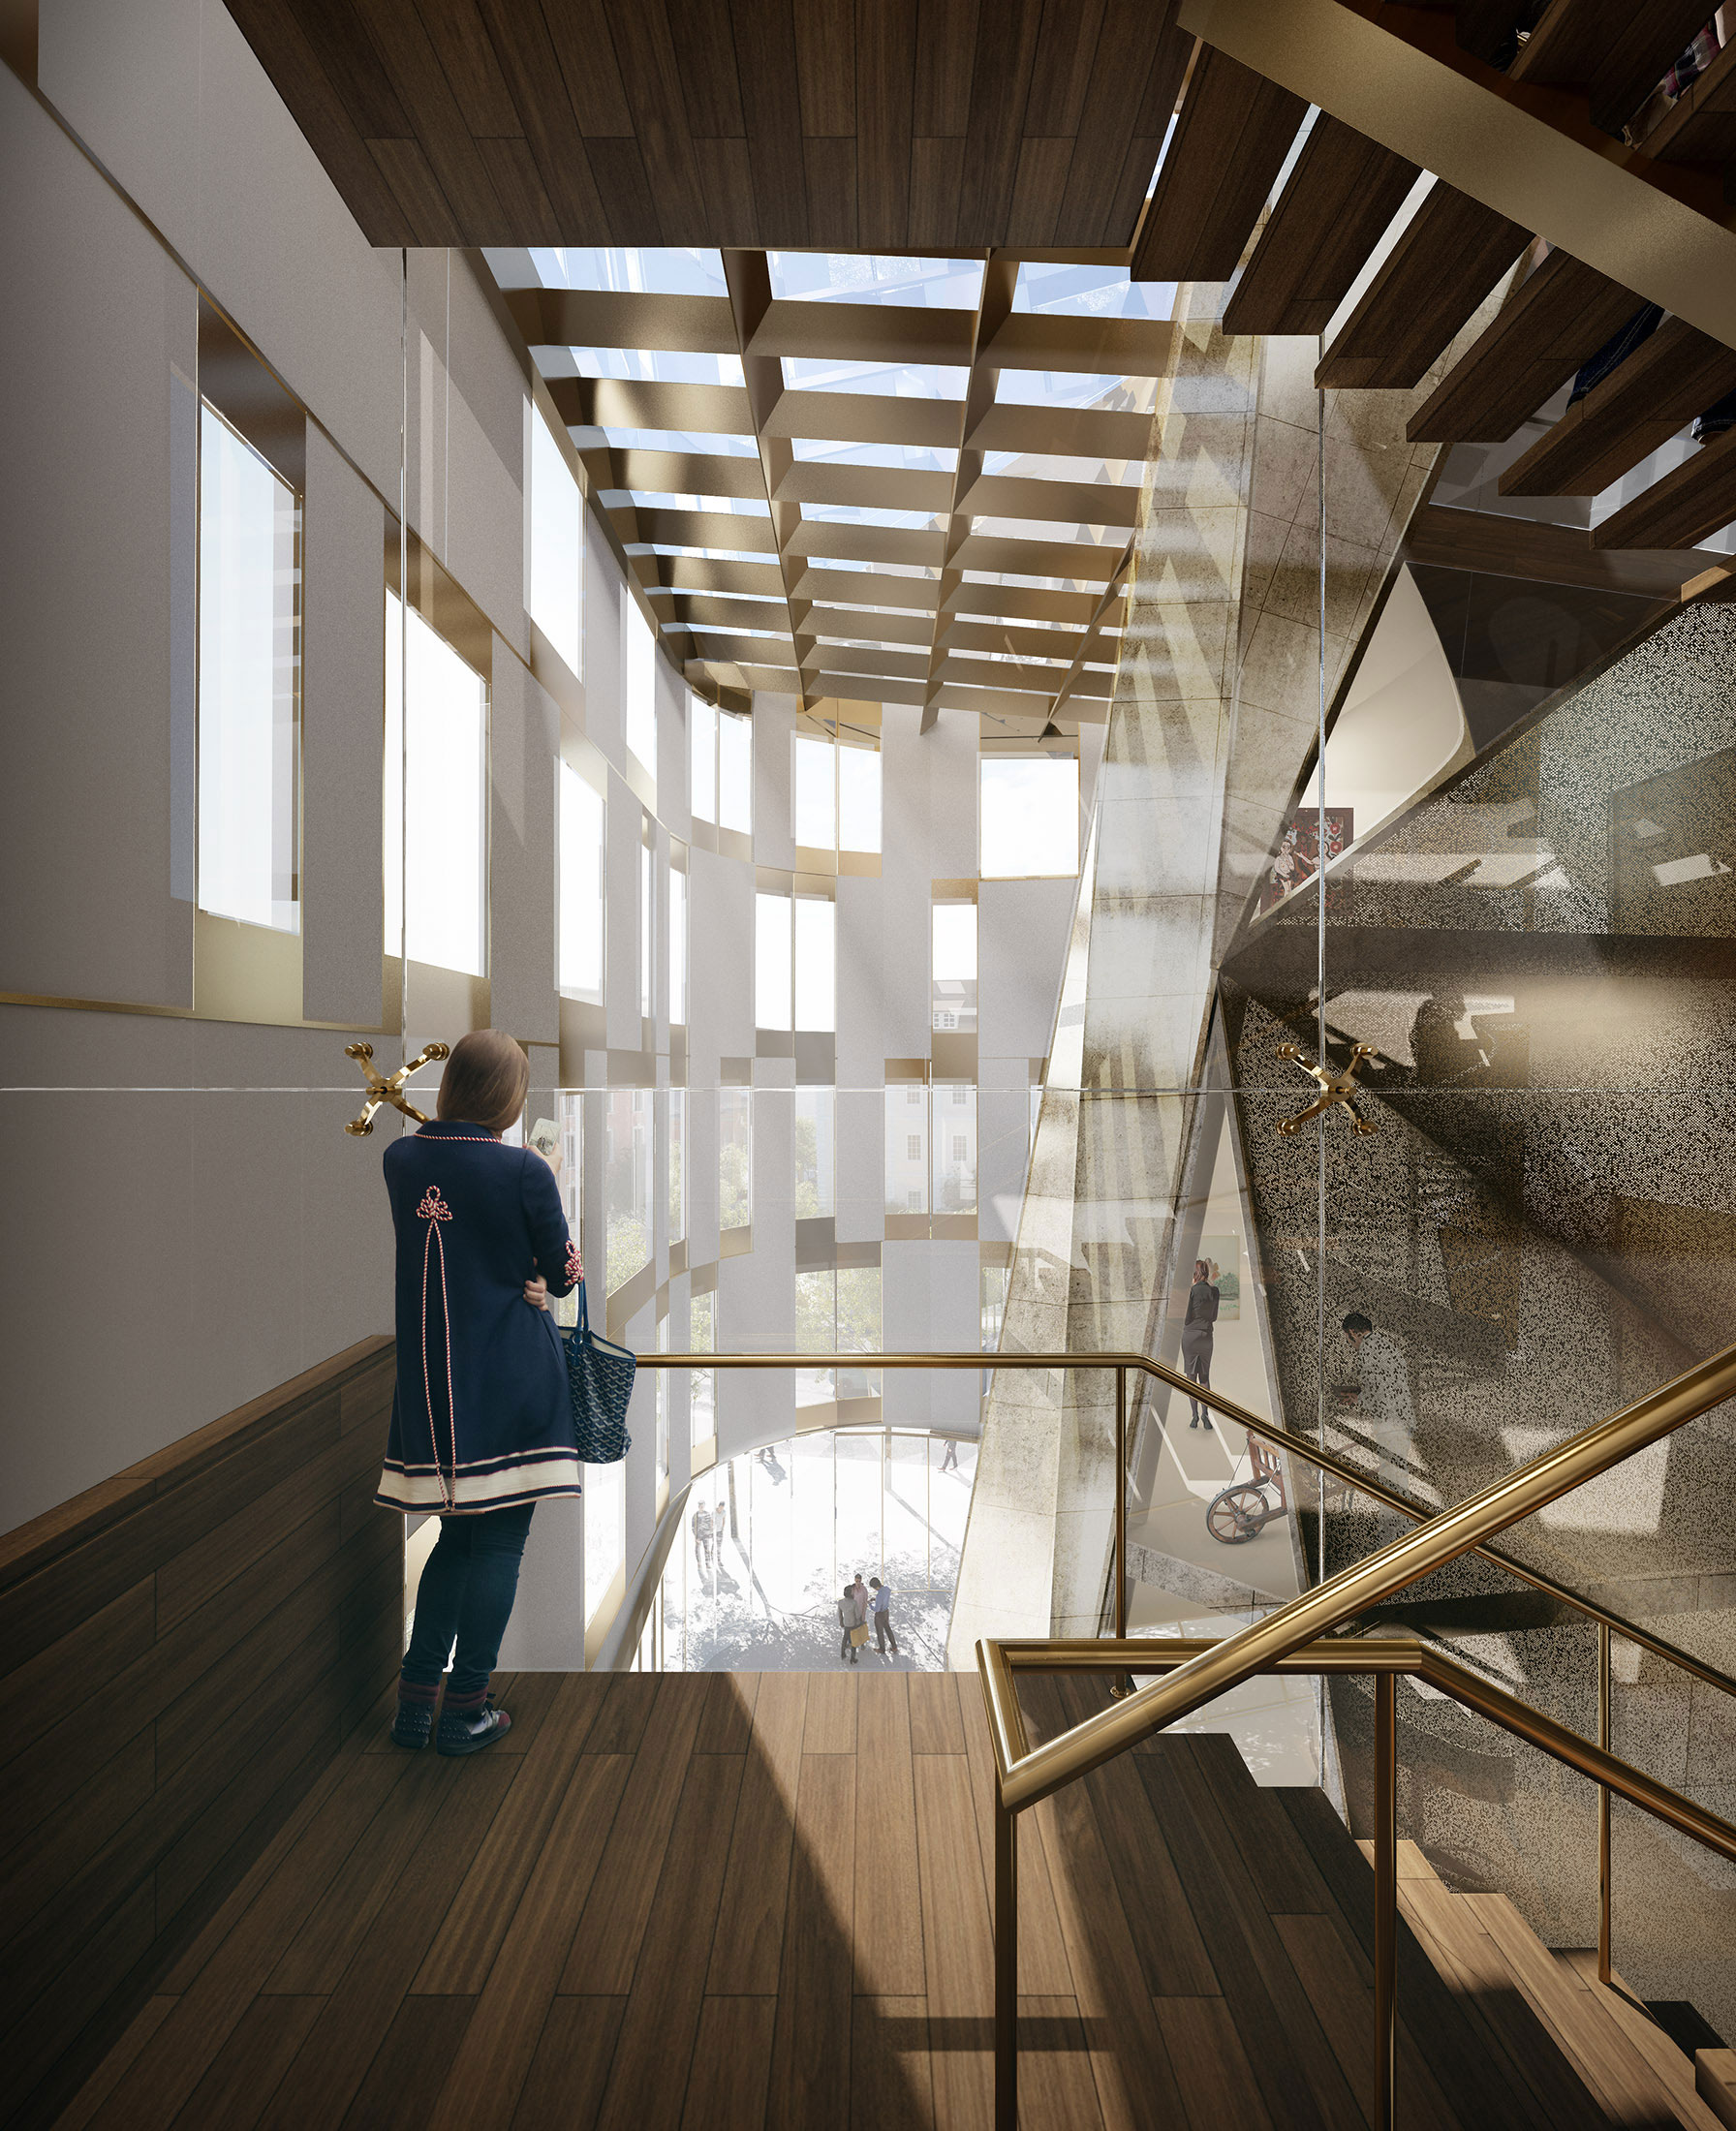 Architectural Rendering of the interior of the Museum of Ethnography located in Budapest, Hungary